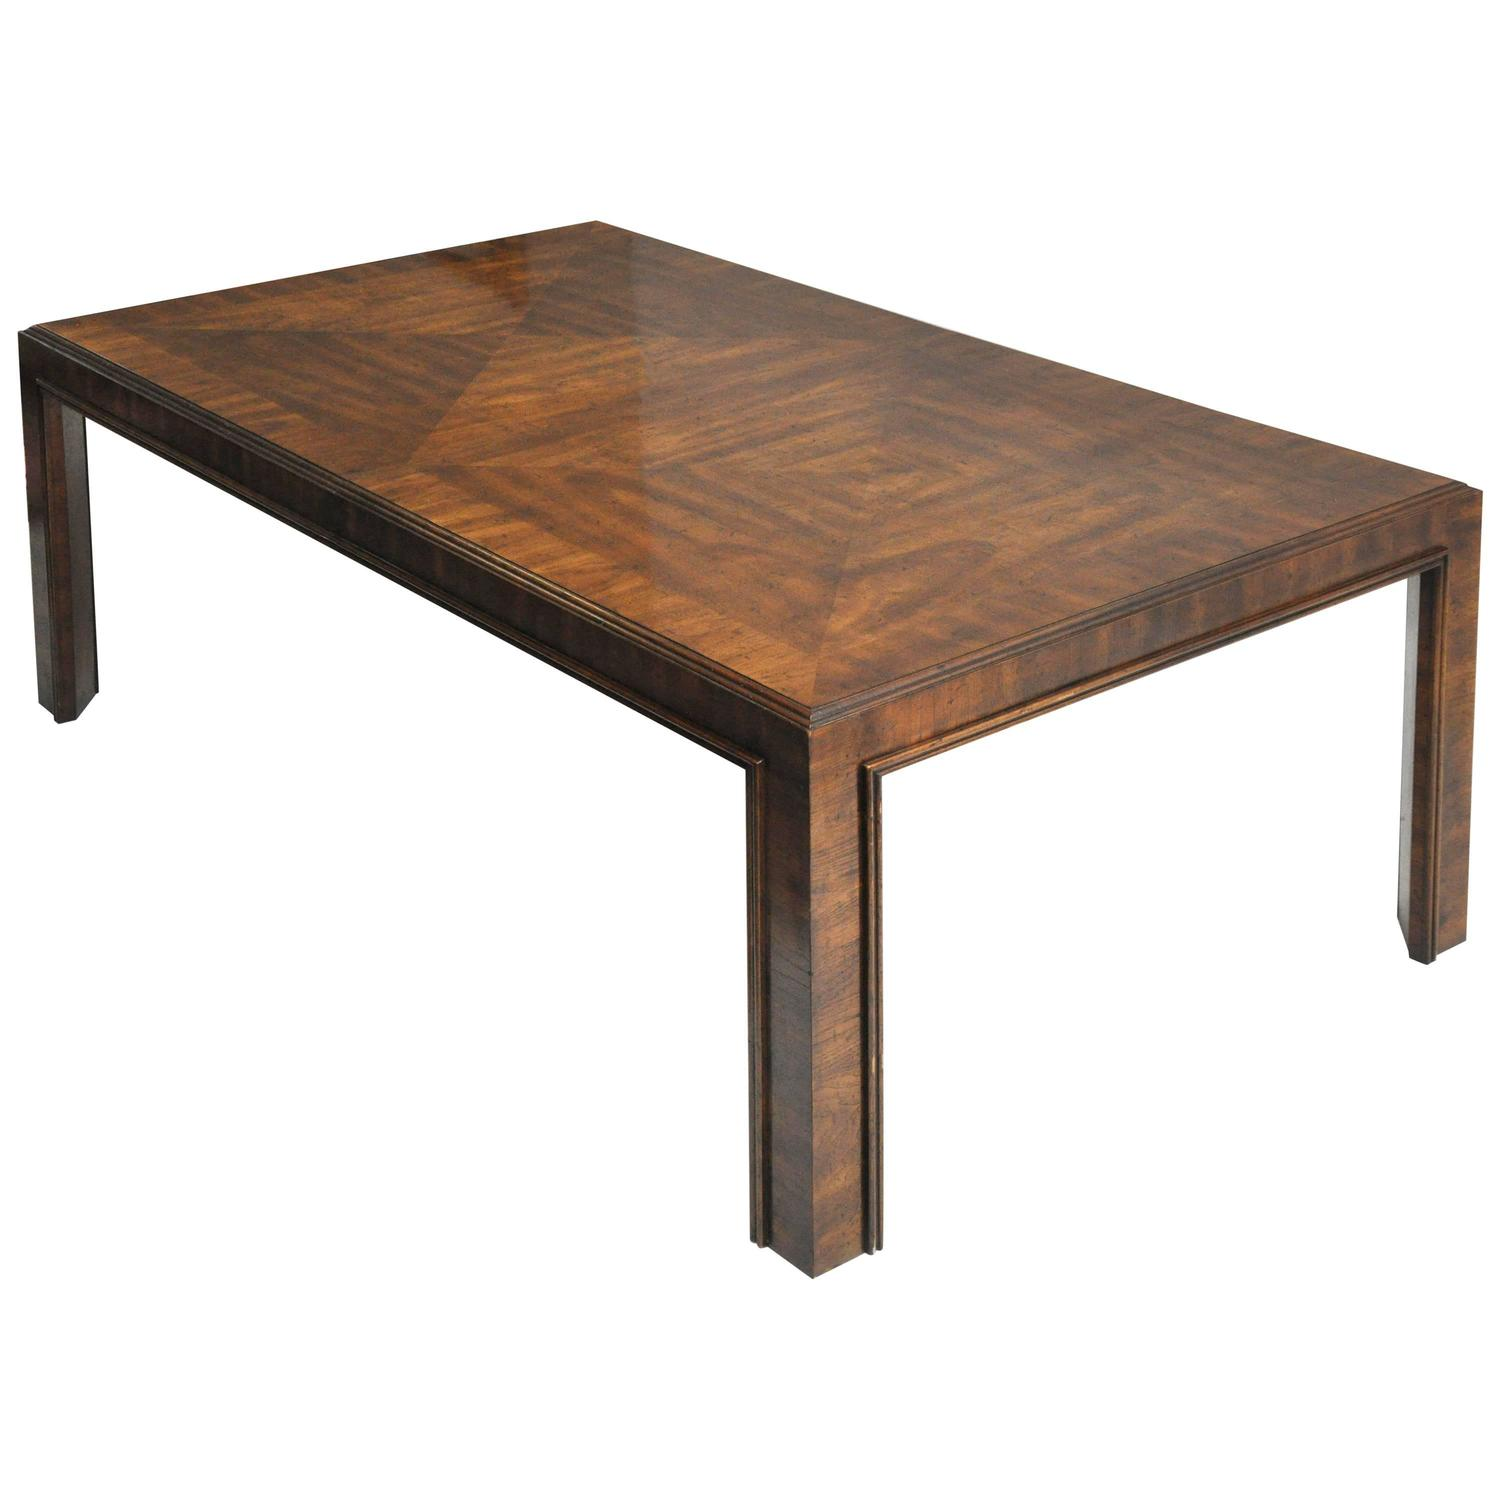 Long Dining Table For Sale Drexel Long Dining Table With Unique Woodgrain Design For